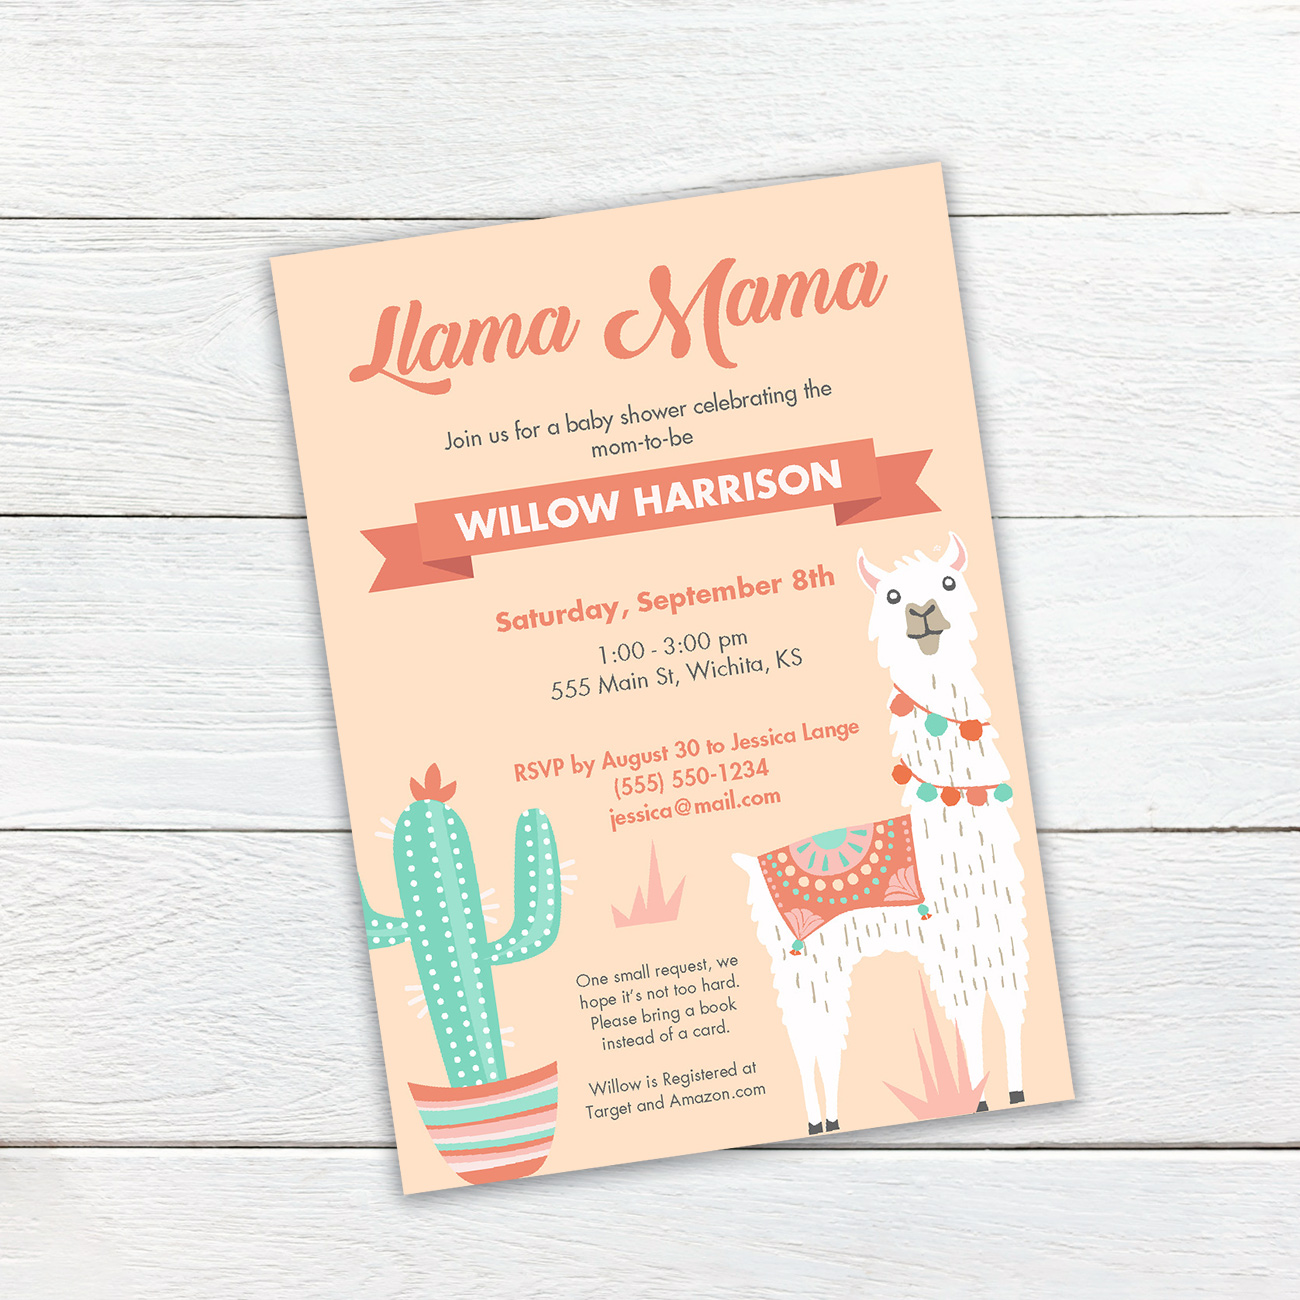 Celebrate the mom to be in mama llama style and a little cactus to boot